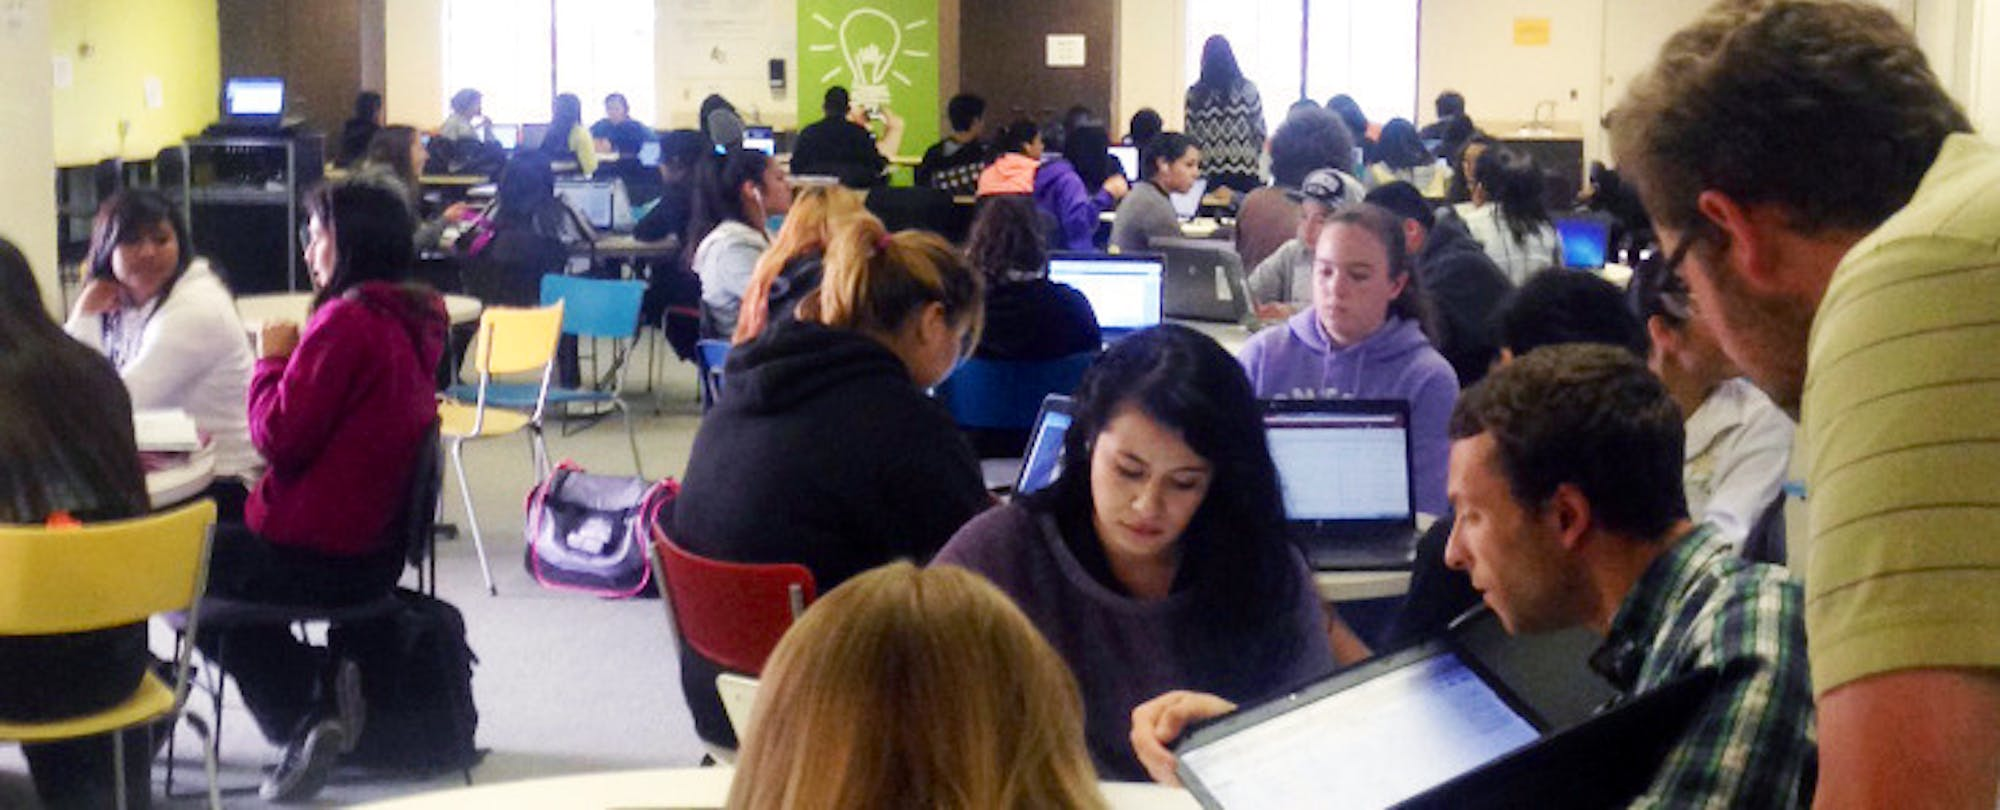 The 'Lean Startup' Model Goes To School